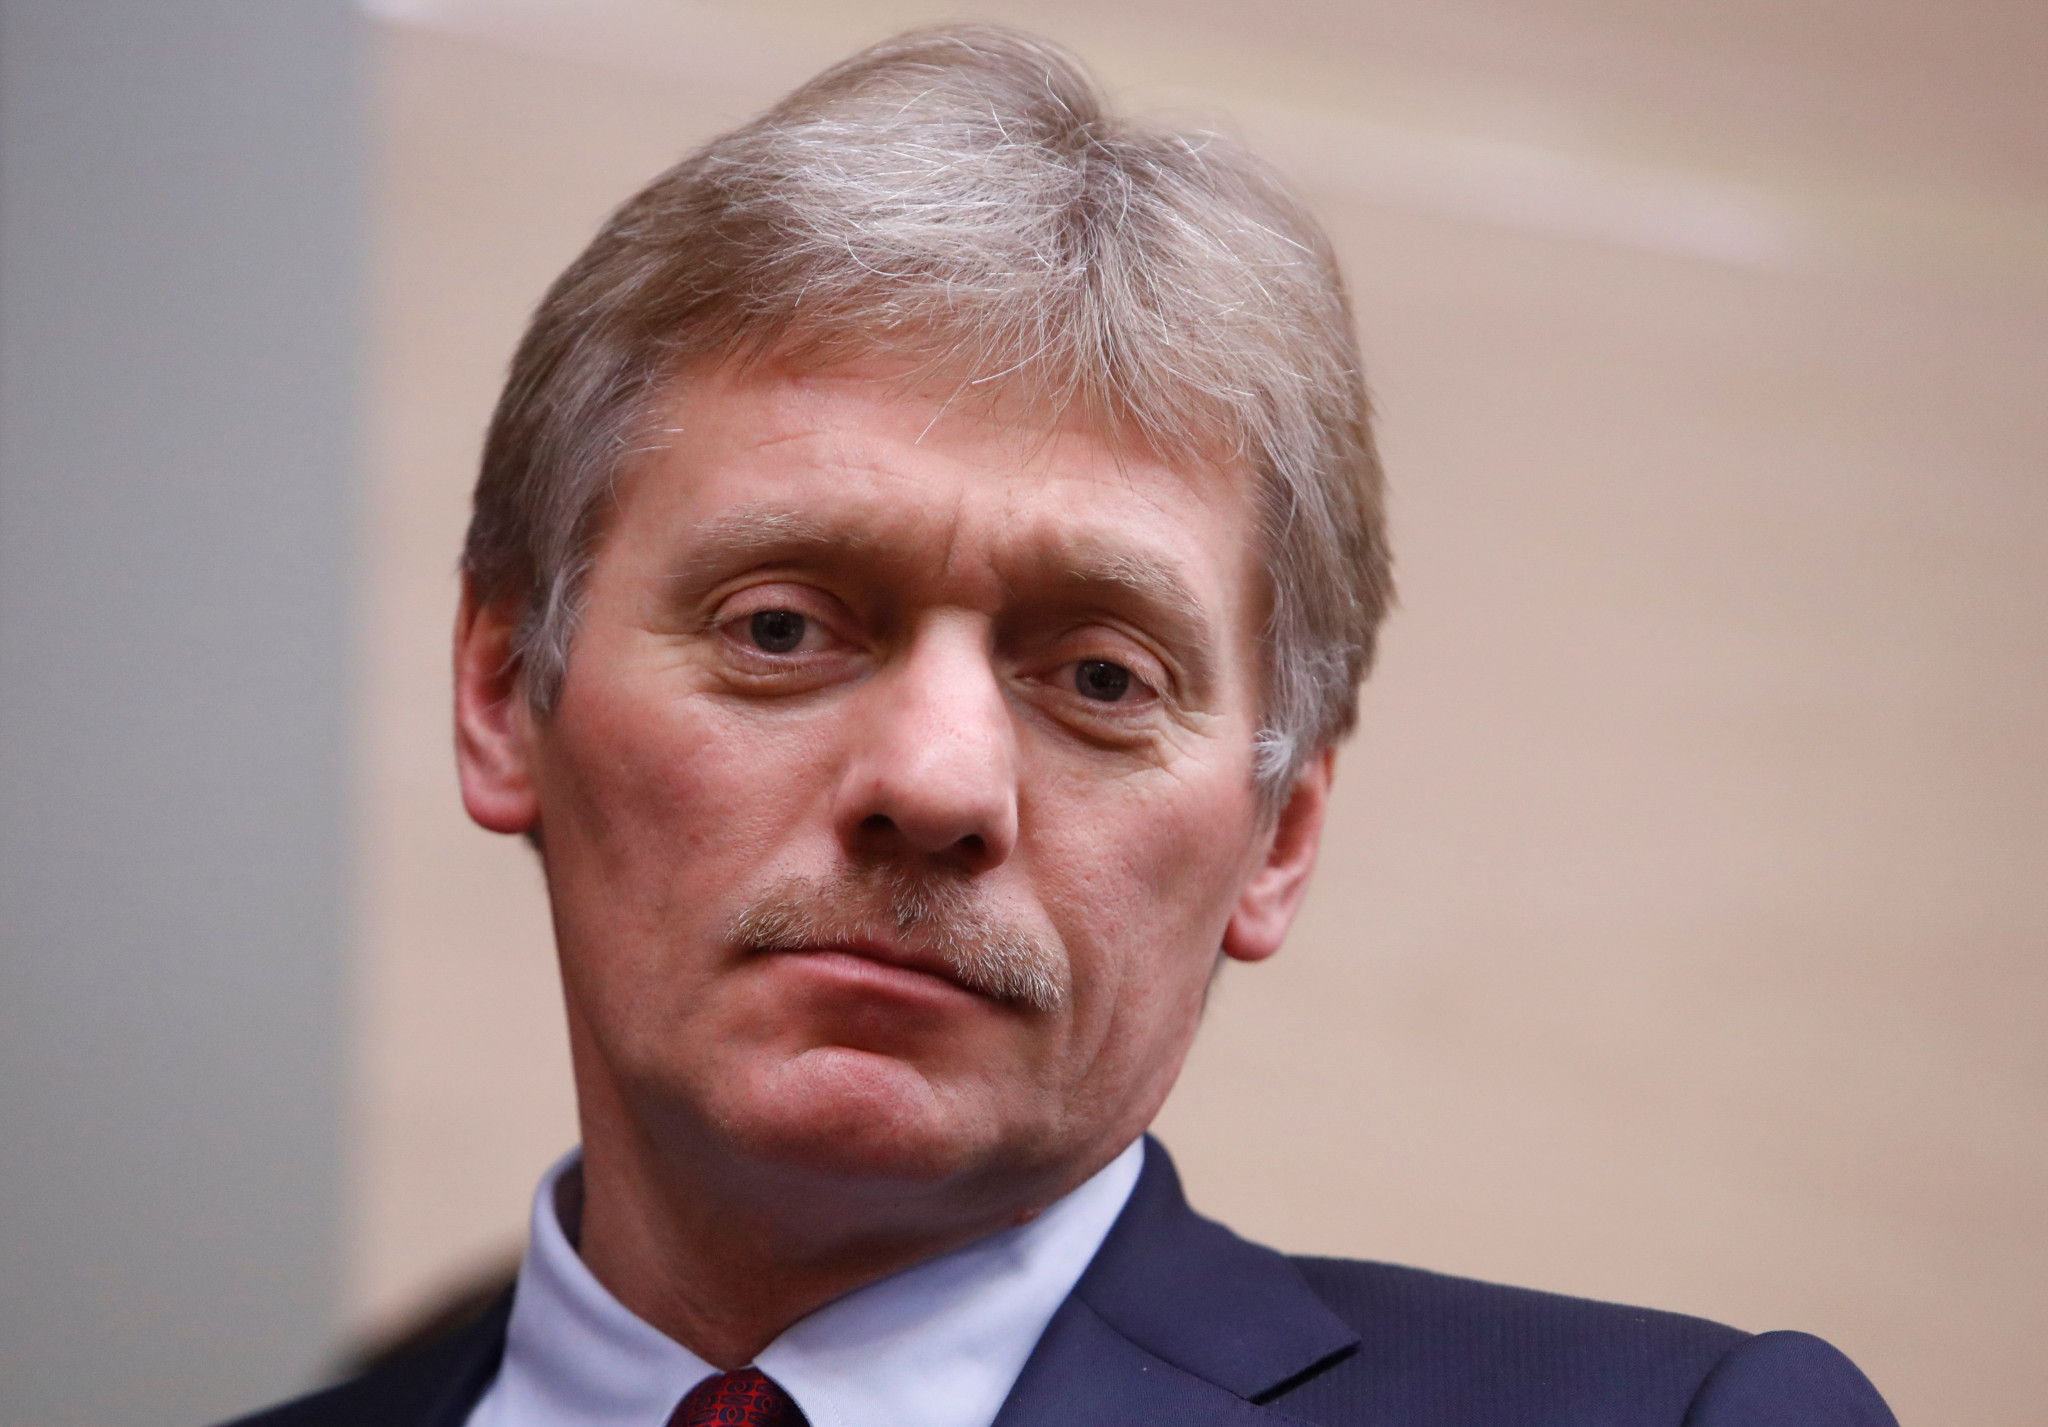 The Kremlin's Presidential spokesman Dmitry Peskov has reacted positively to the decision from the IPC to conditionally lift Russia's suspension ©Getty Images